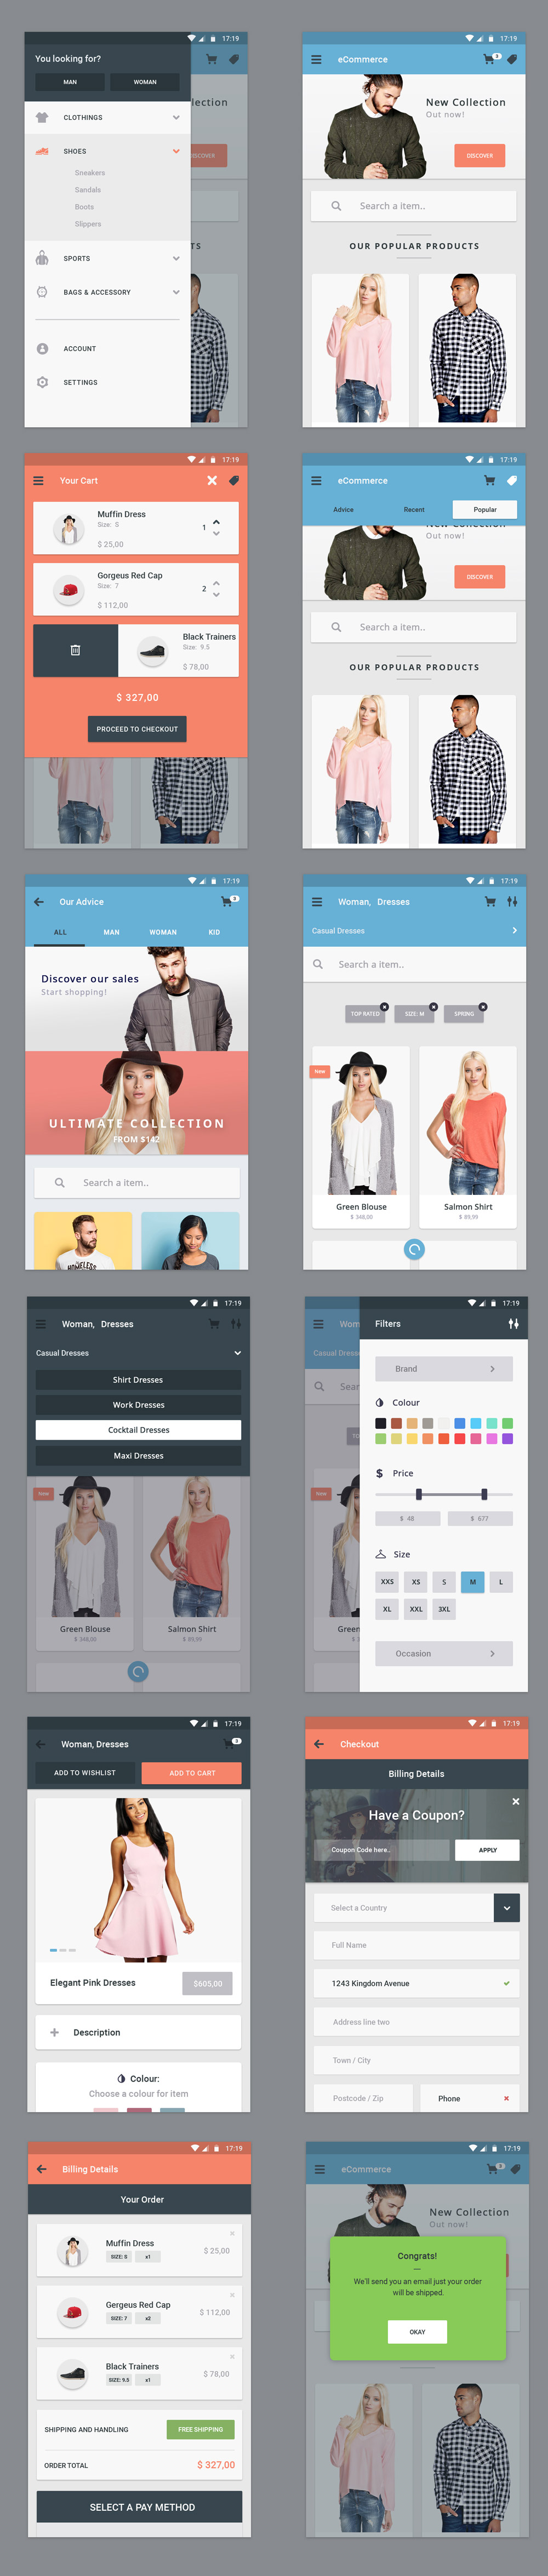 12-ecommerce-app-ui-screens